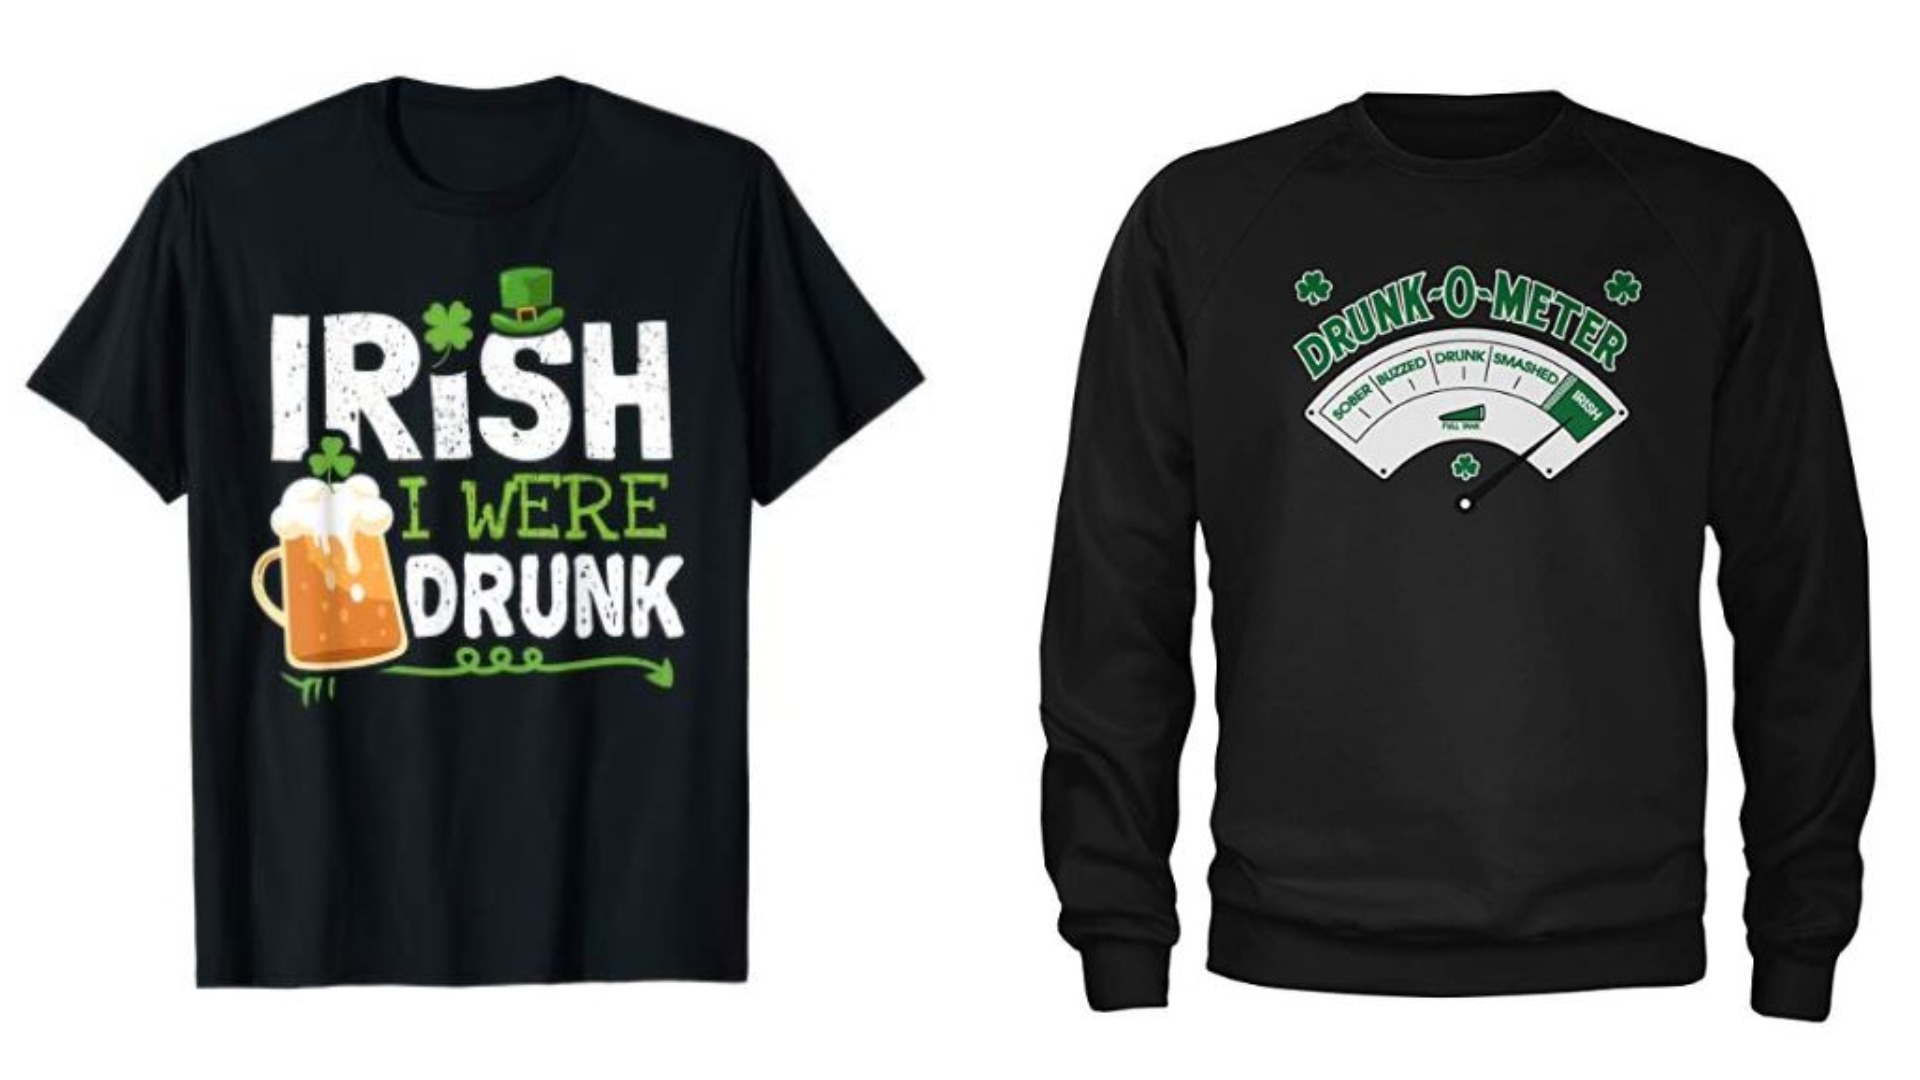 4ec4c39ddb927 Are Amazon within their right to sell drunk Irish stereotype ...